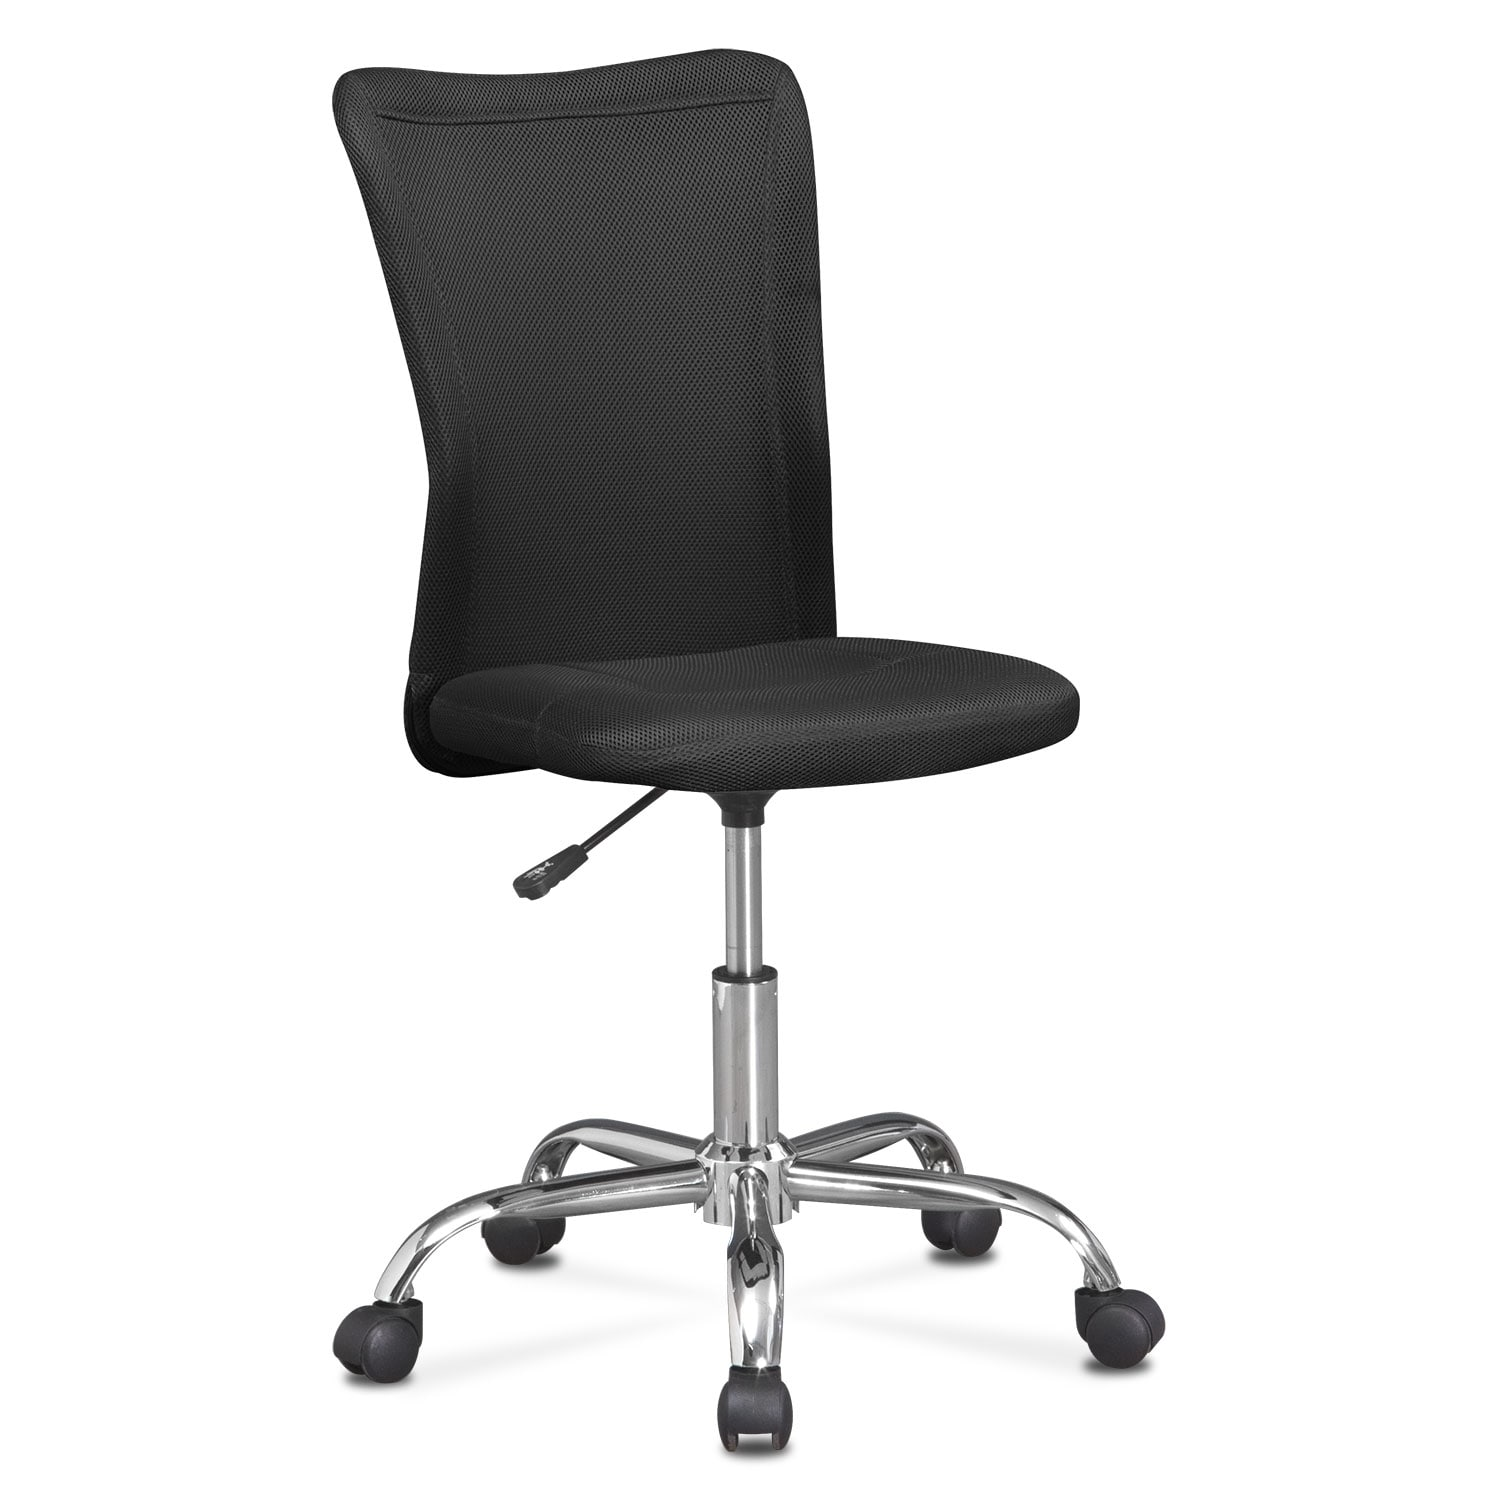 Home Office Furniture - Mist Desk Chair - Black